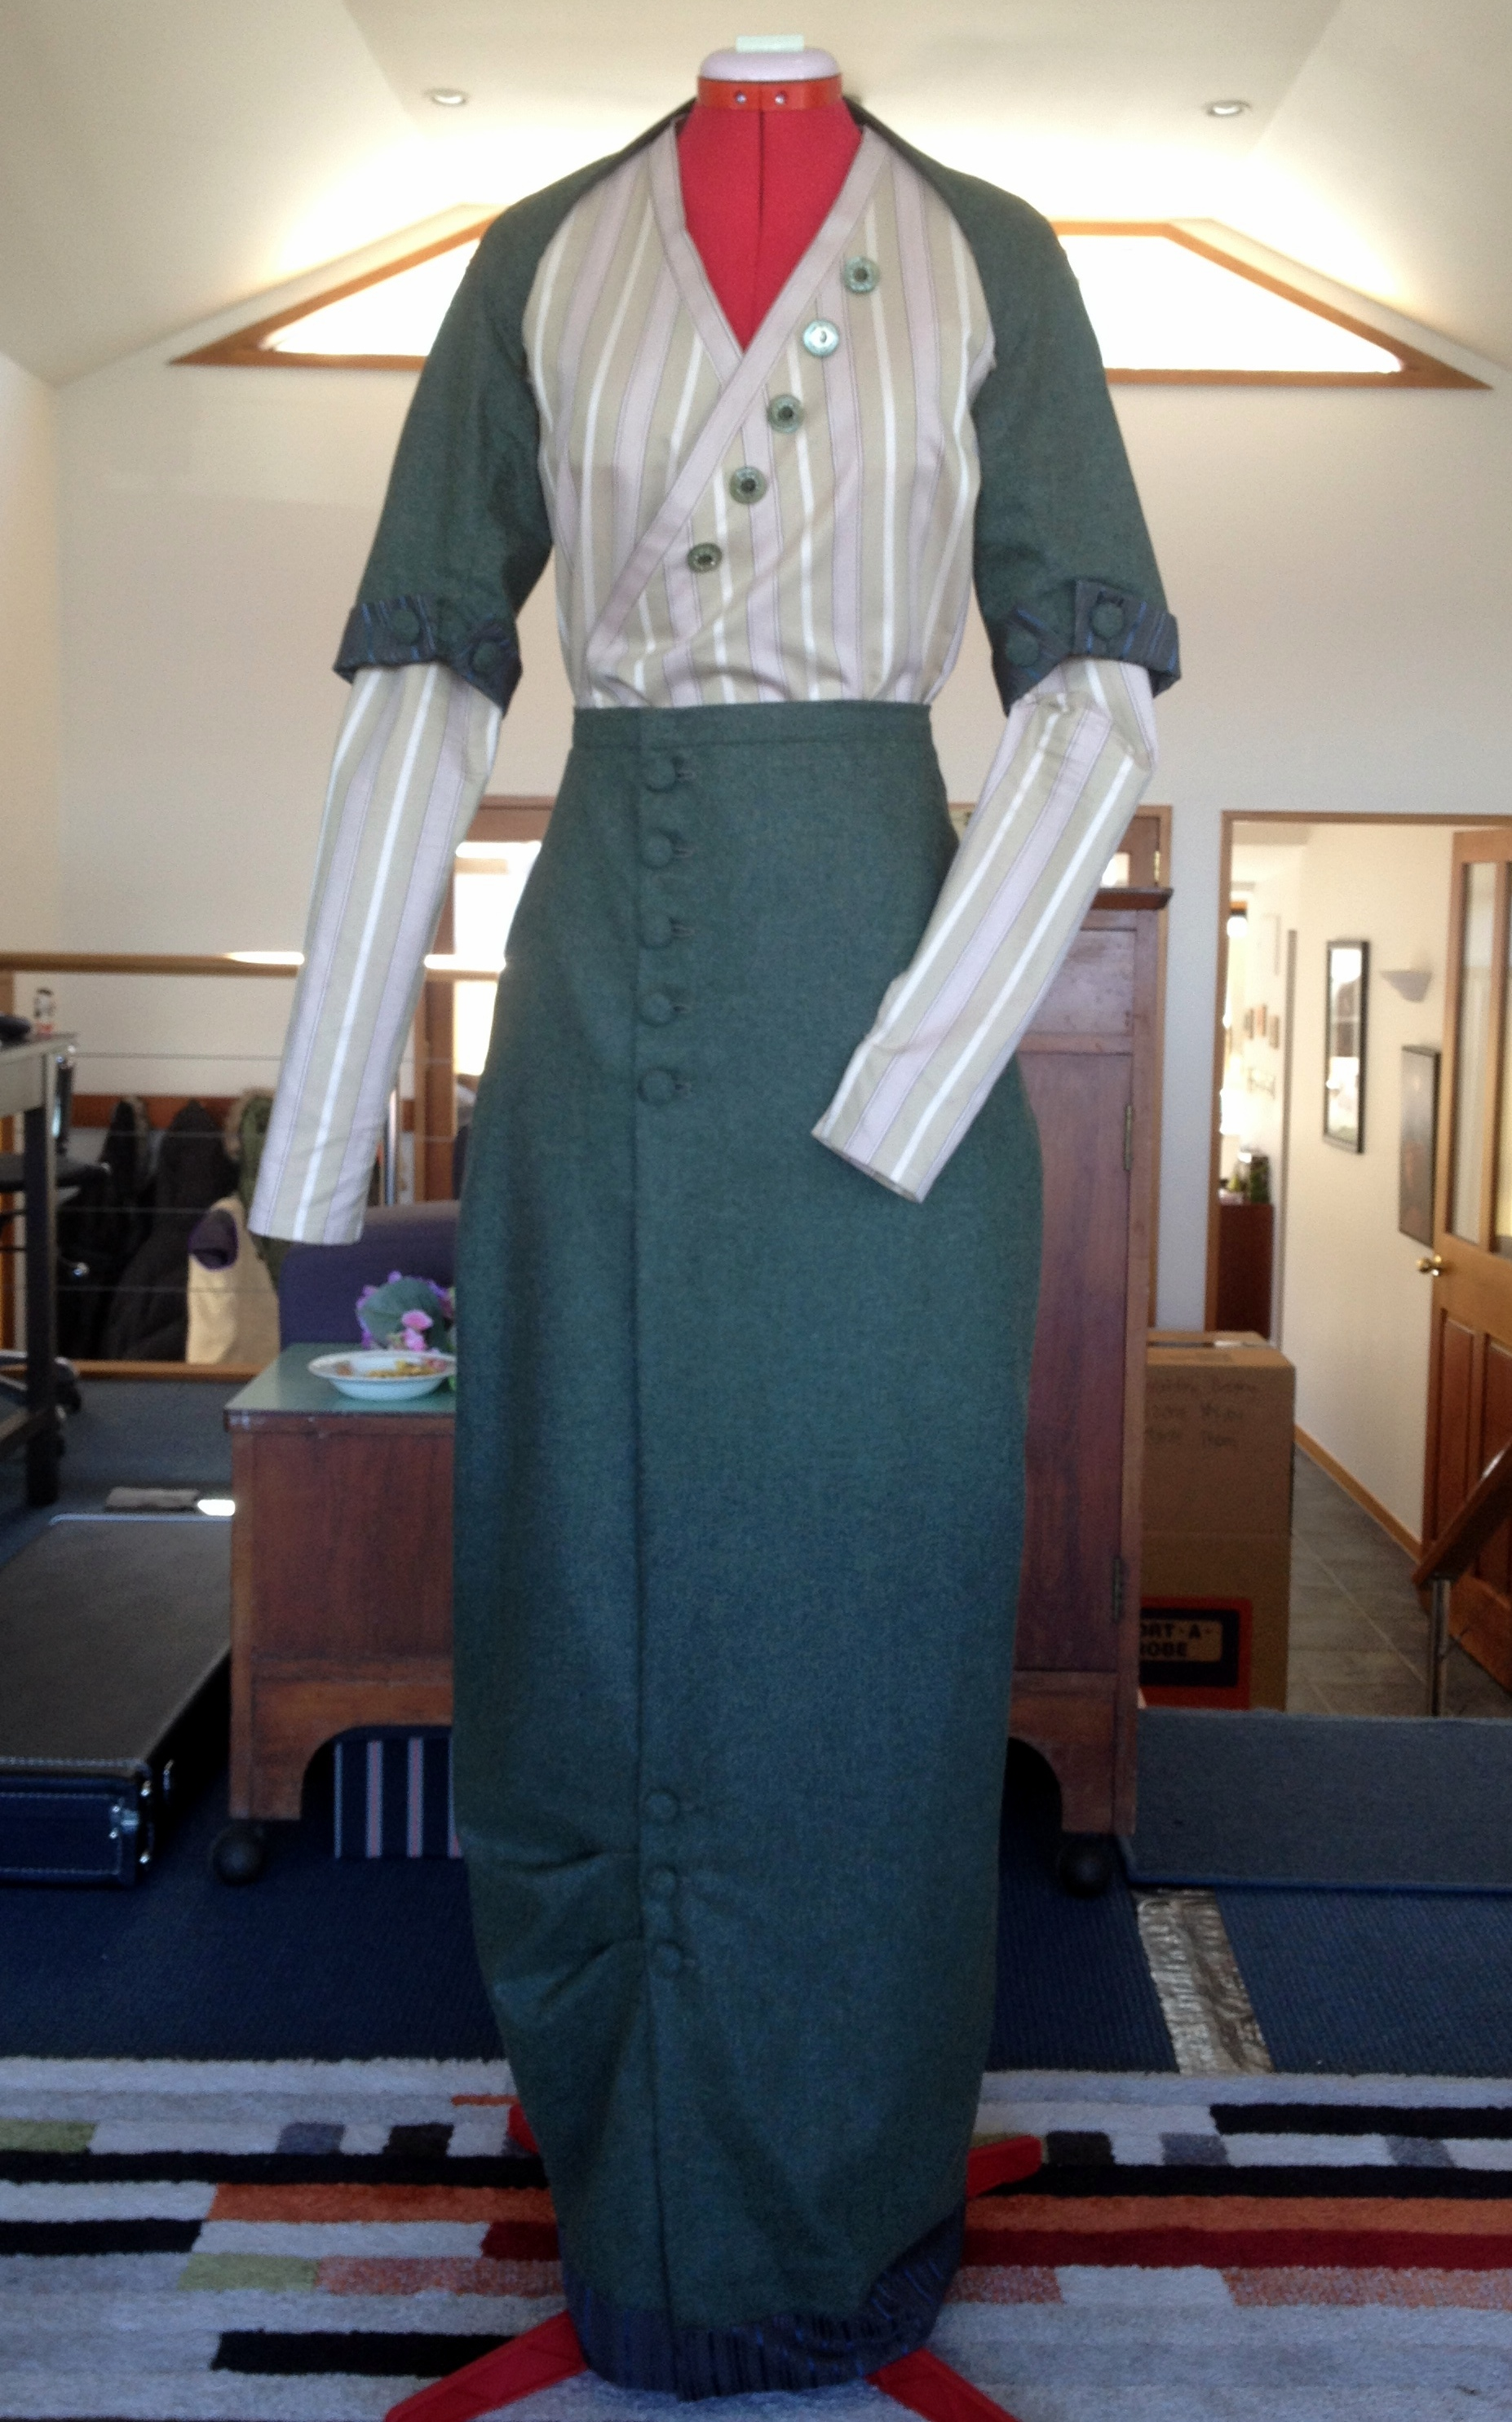 1912 Walking Outfit